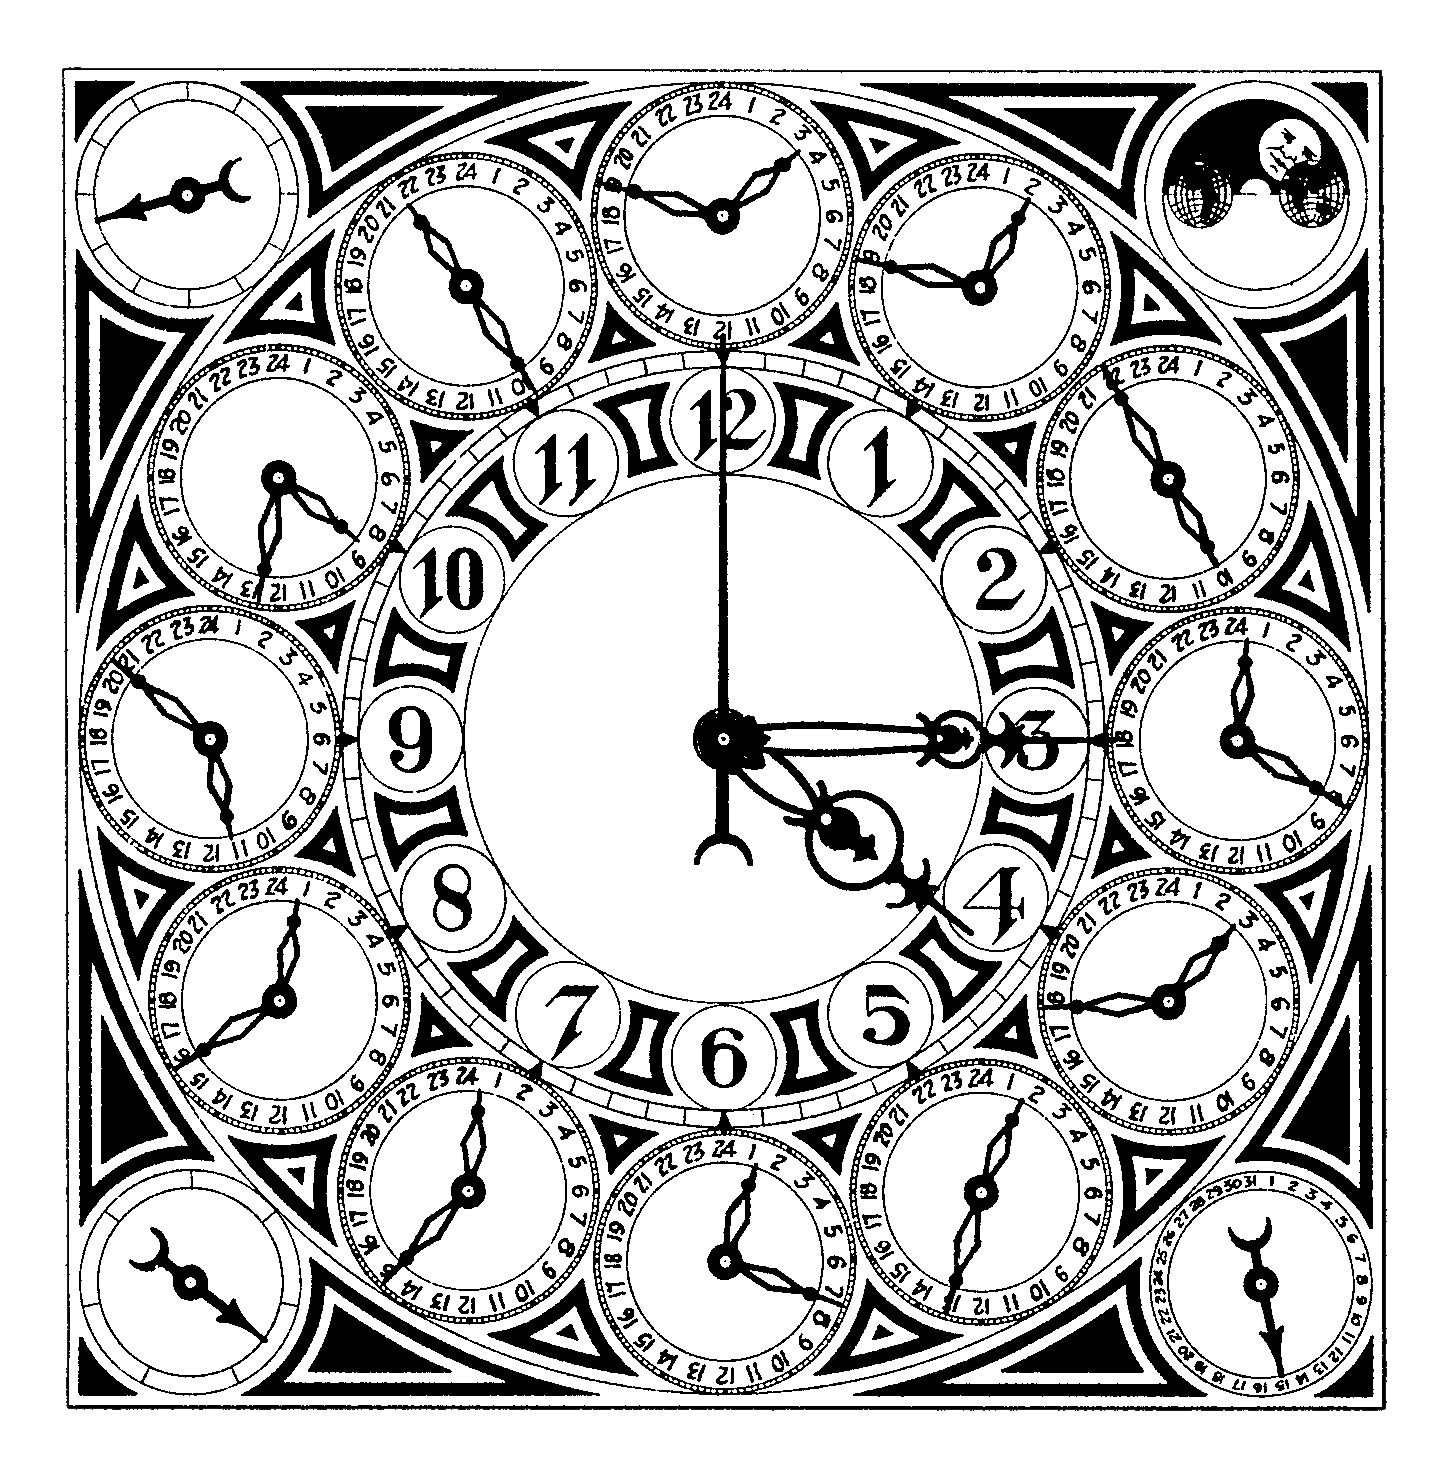 Steampunk Clock Drawing at GetDrawings com | Free for personal use